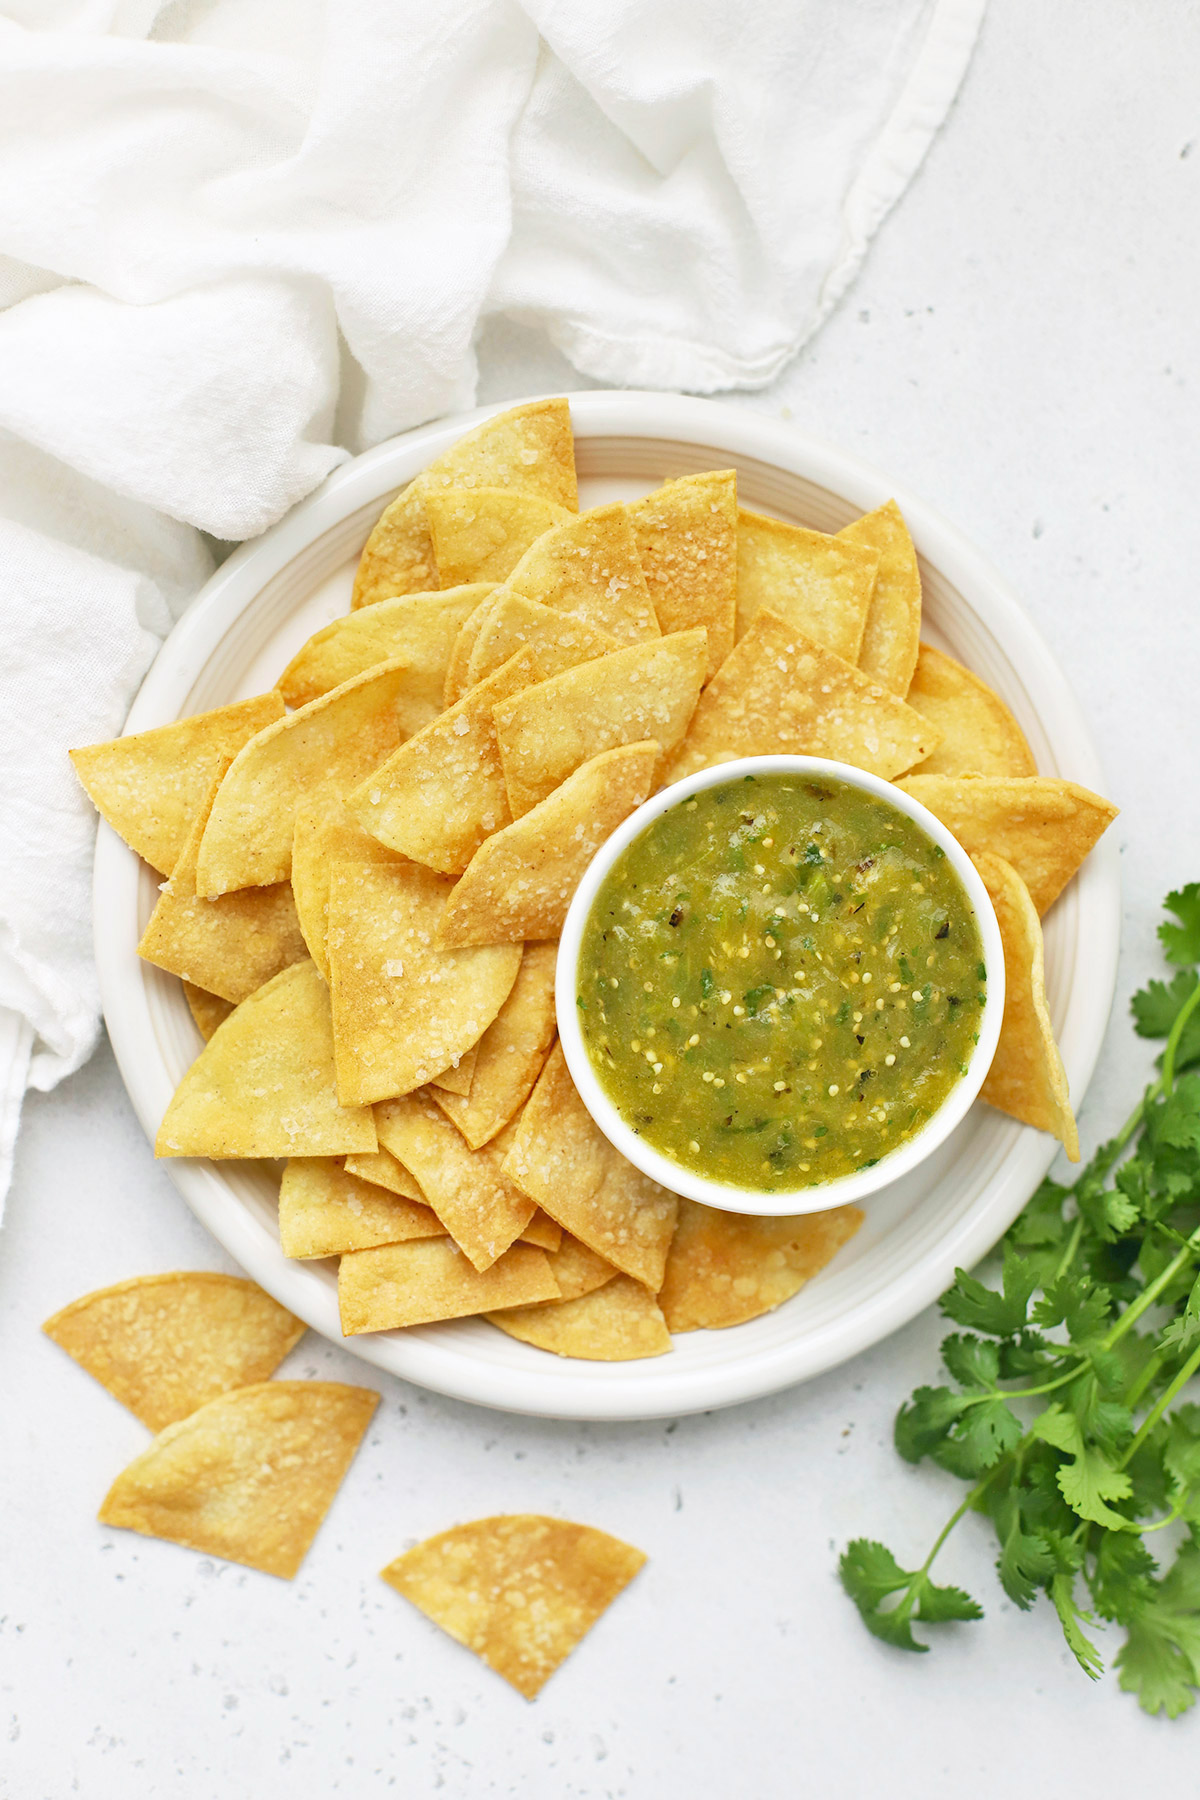 Overhead view of a plate of baked tortilla chips with a bowl of homemade salsa verde (green salsa)